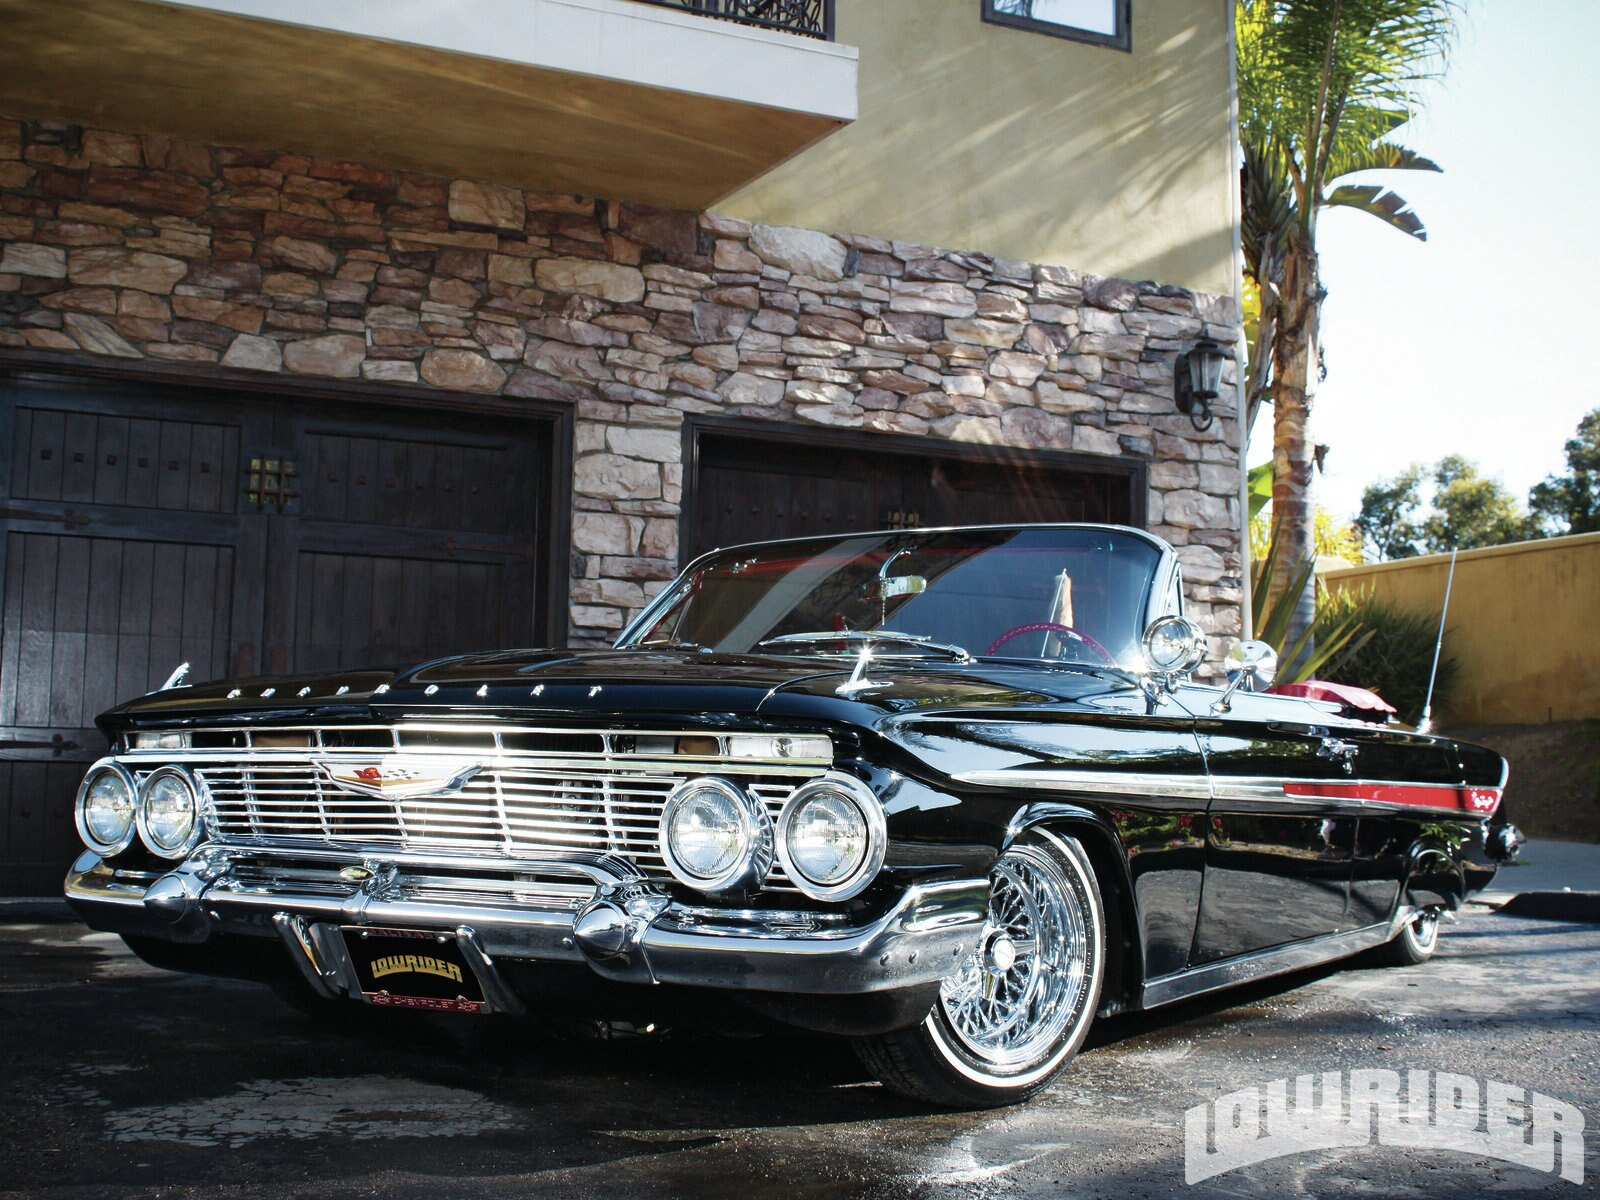 Lowrider Magazine 1961 Chevrolet Impala Ragtop Doing It